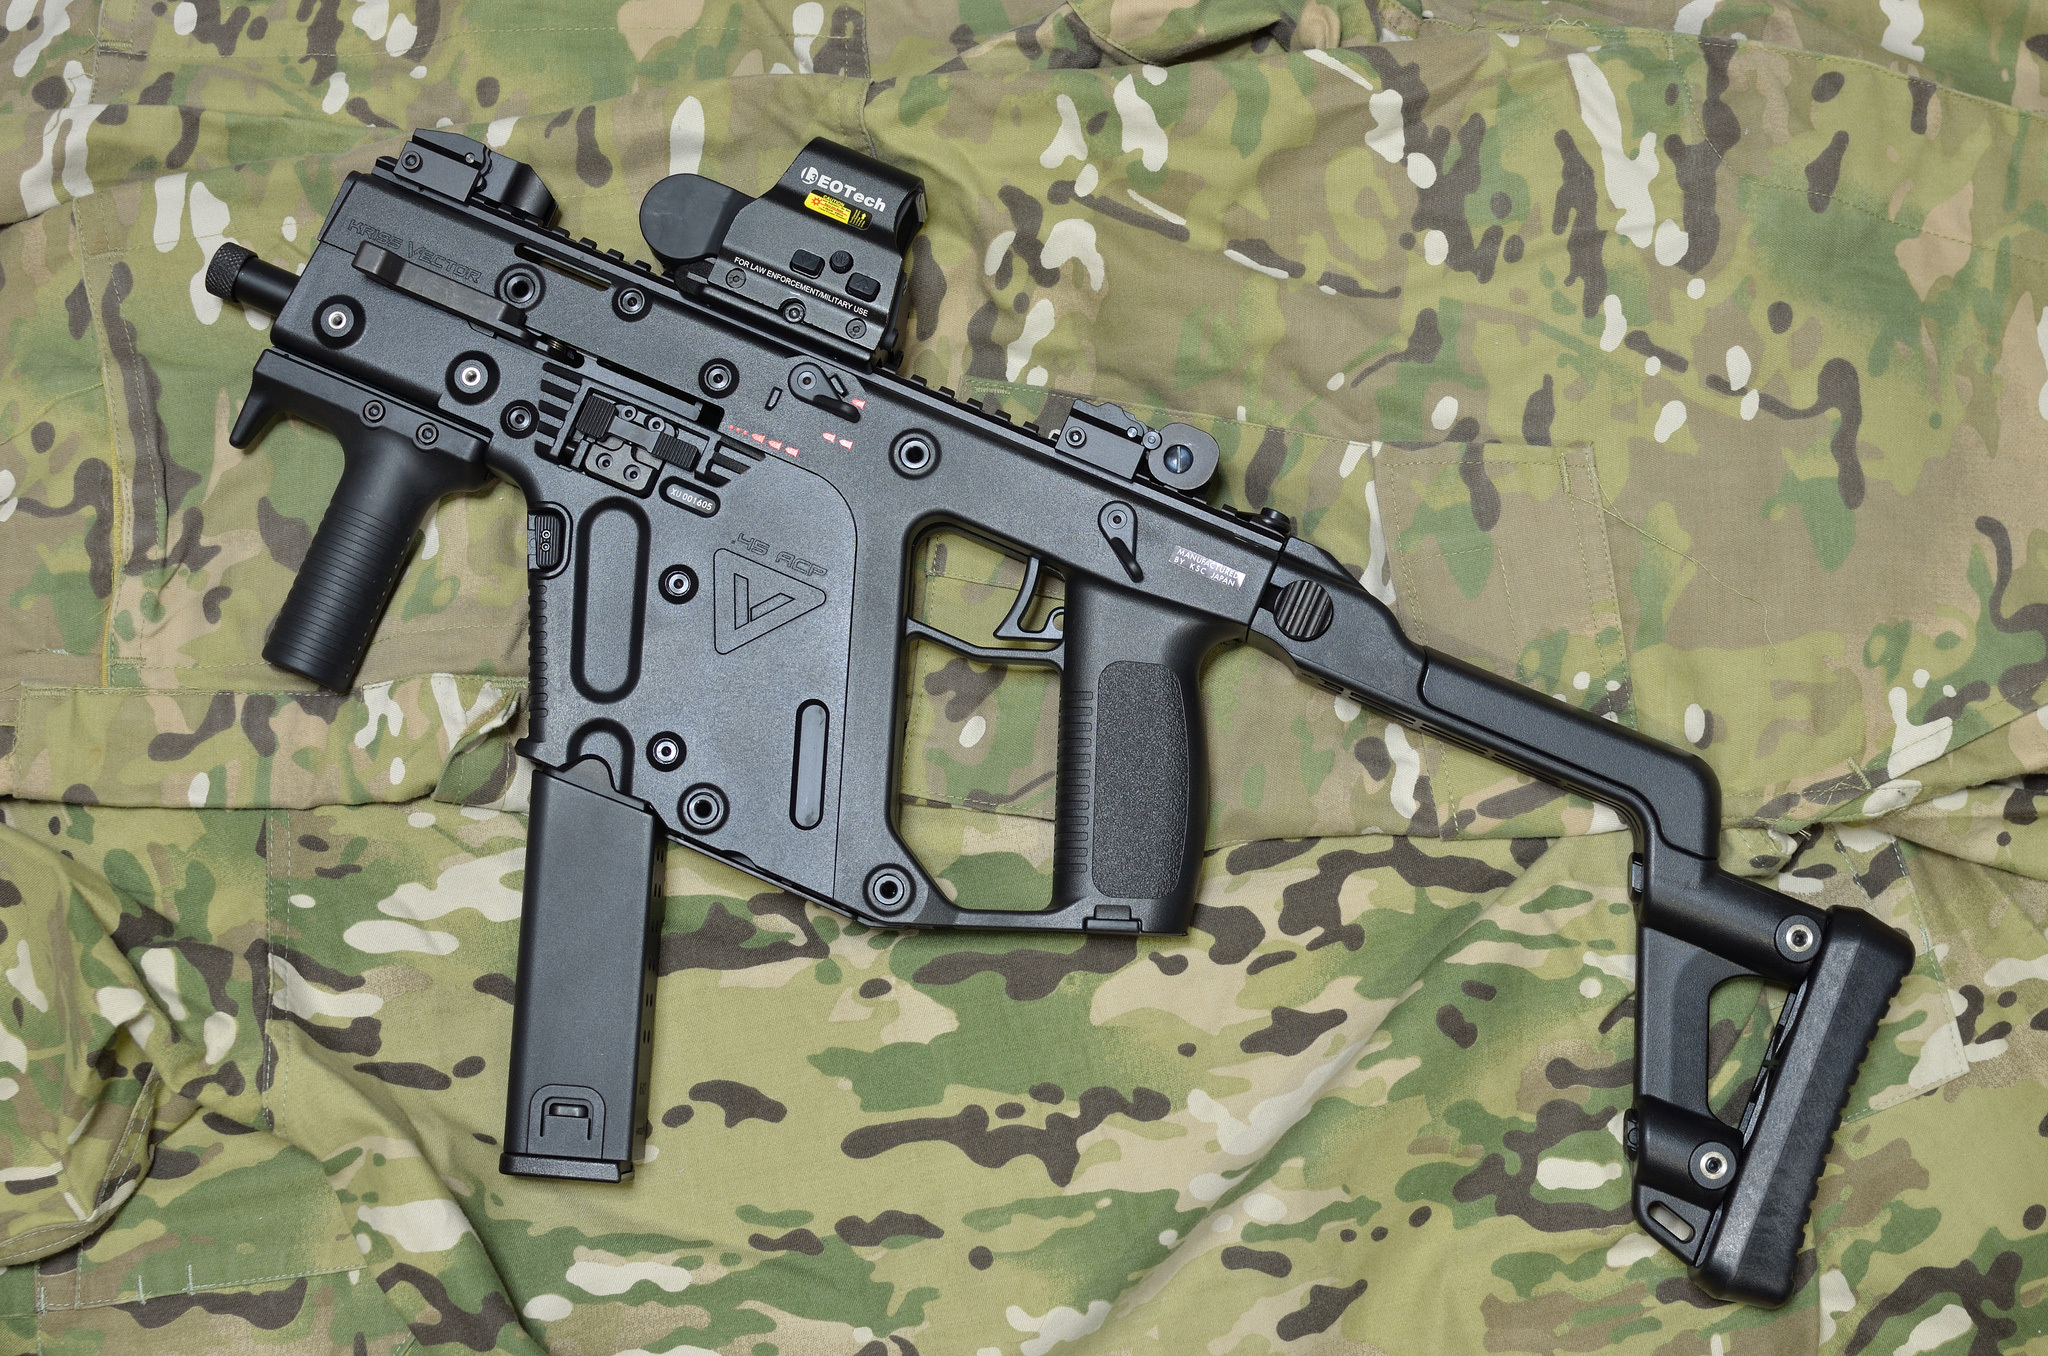 KRISS Vector Super V Backgrounds, Compatible - PC, Mobile, Gadgets| 2048x1356 px